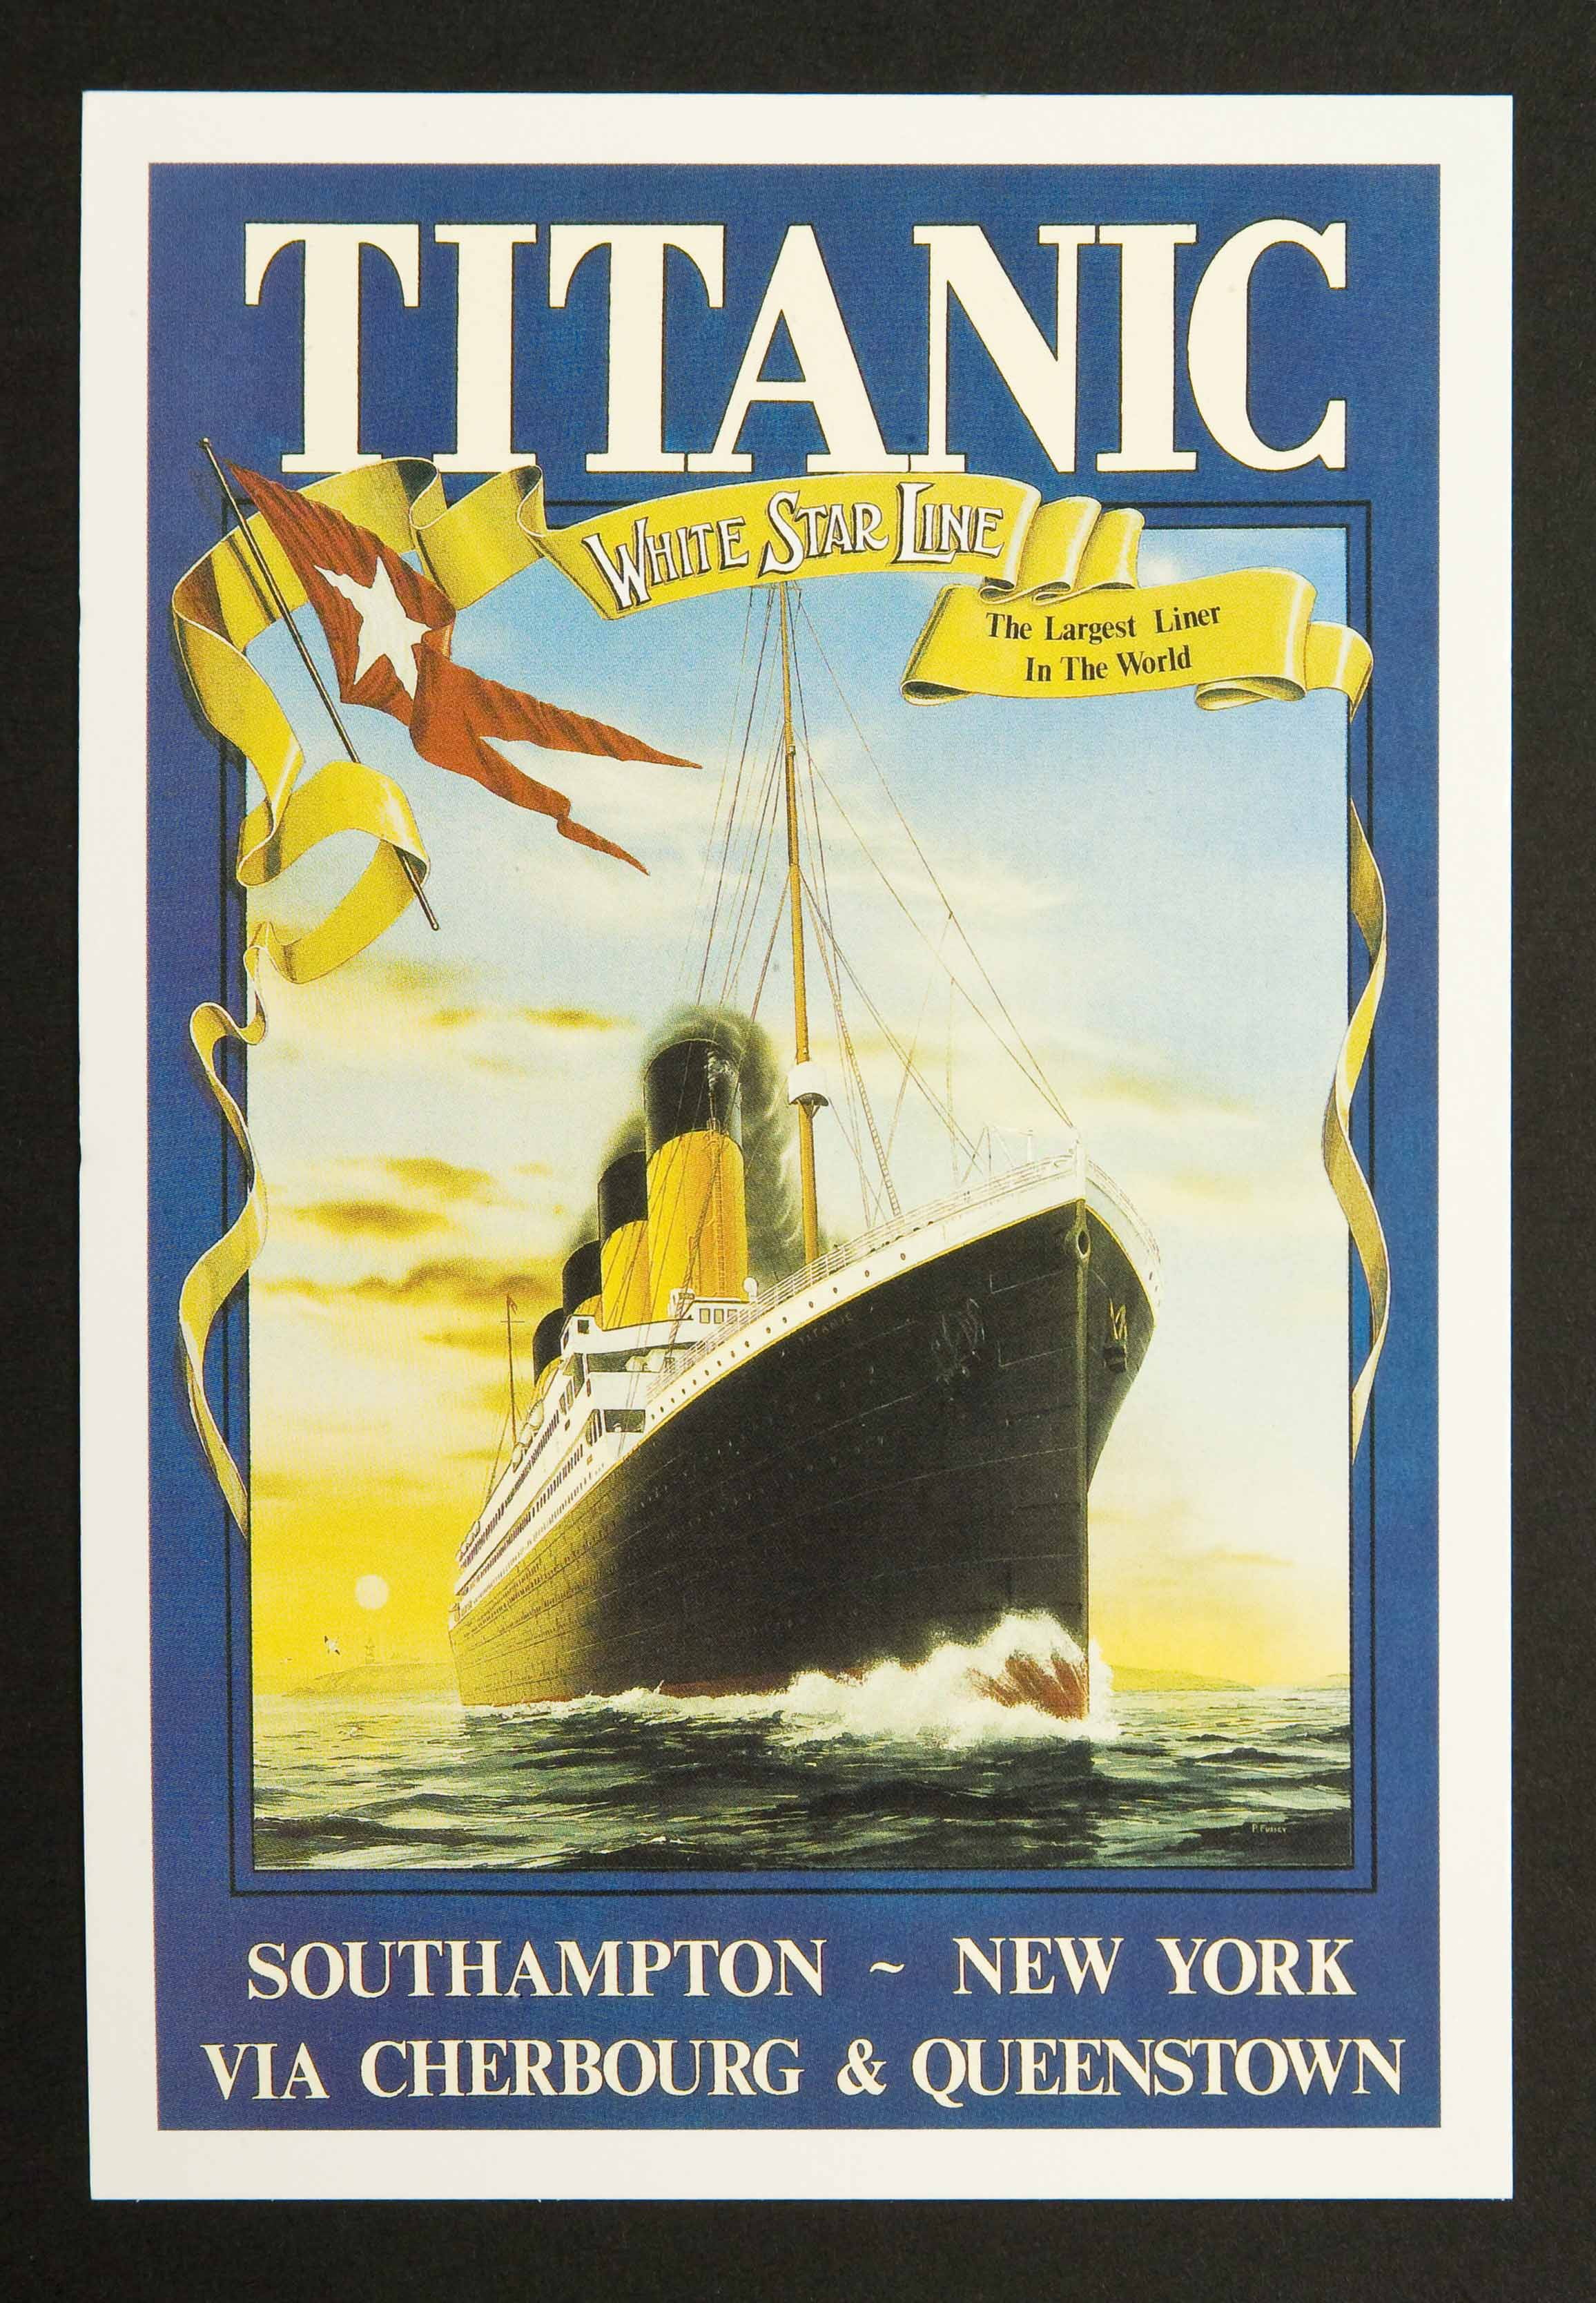 Titanic - White Star Line Sunrise Postcards (6)